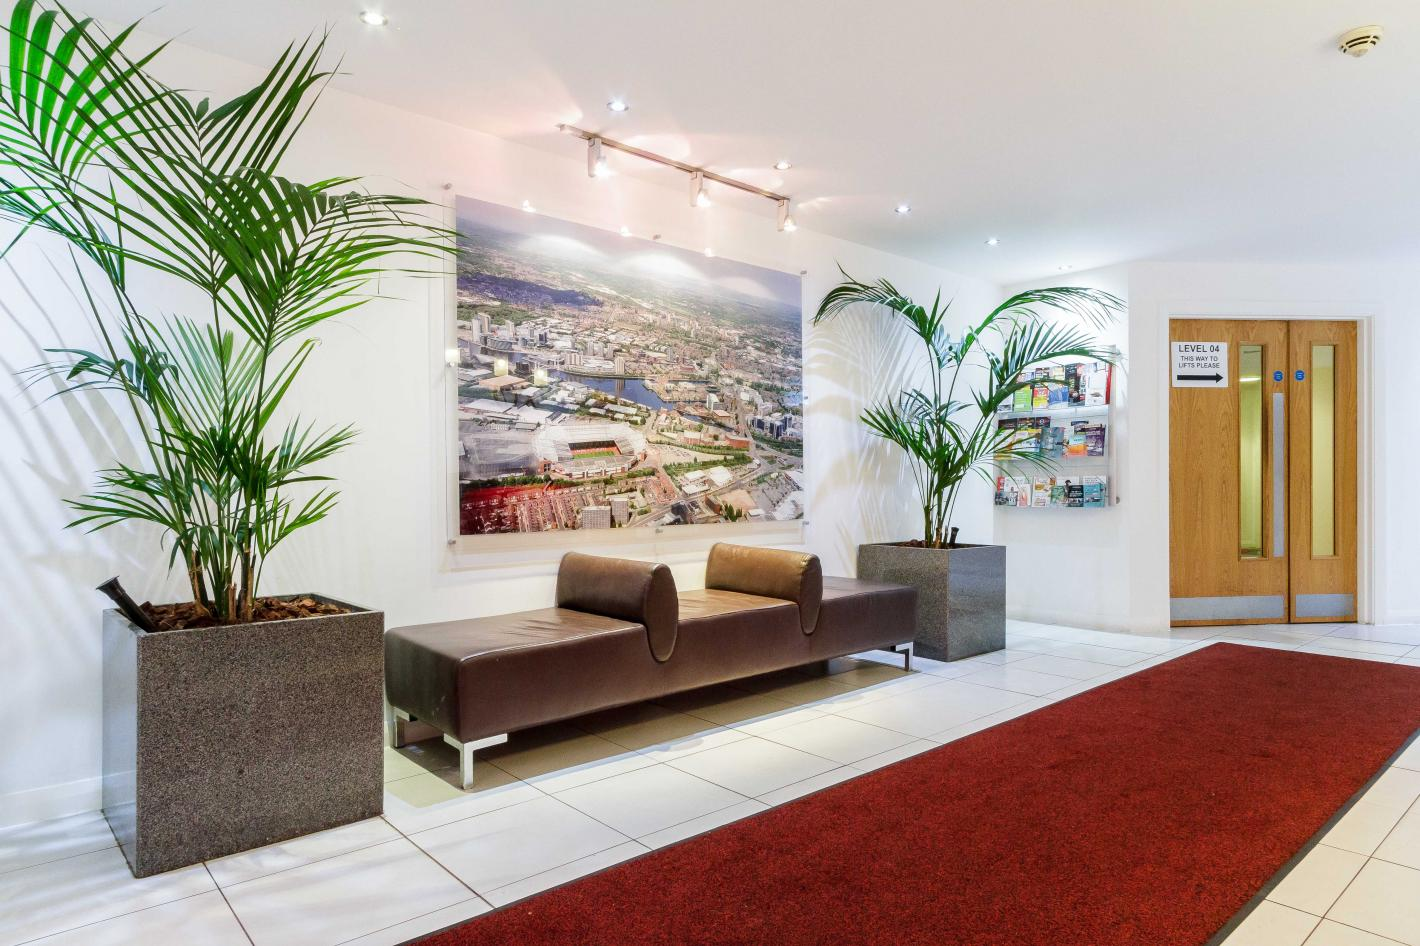 white lobby with red carpet and art work